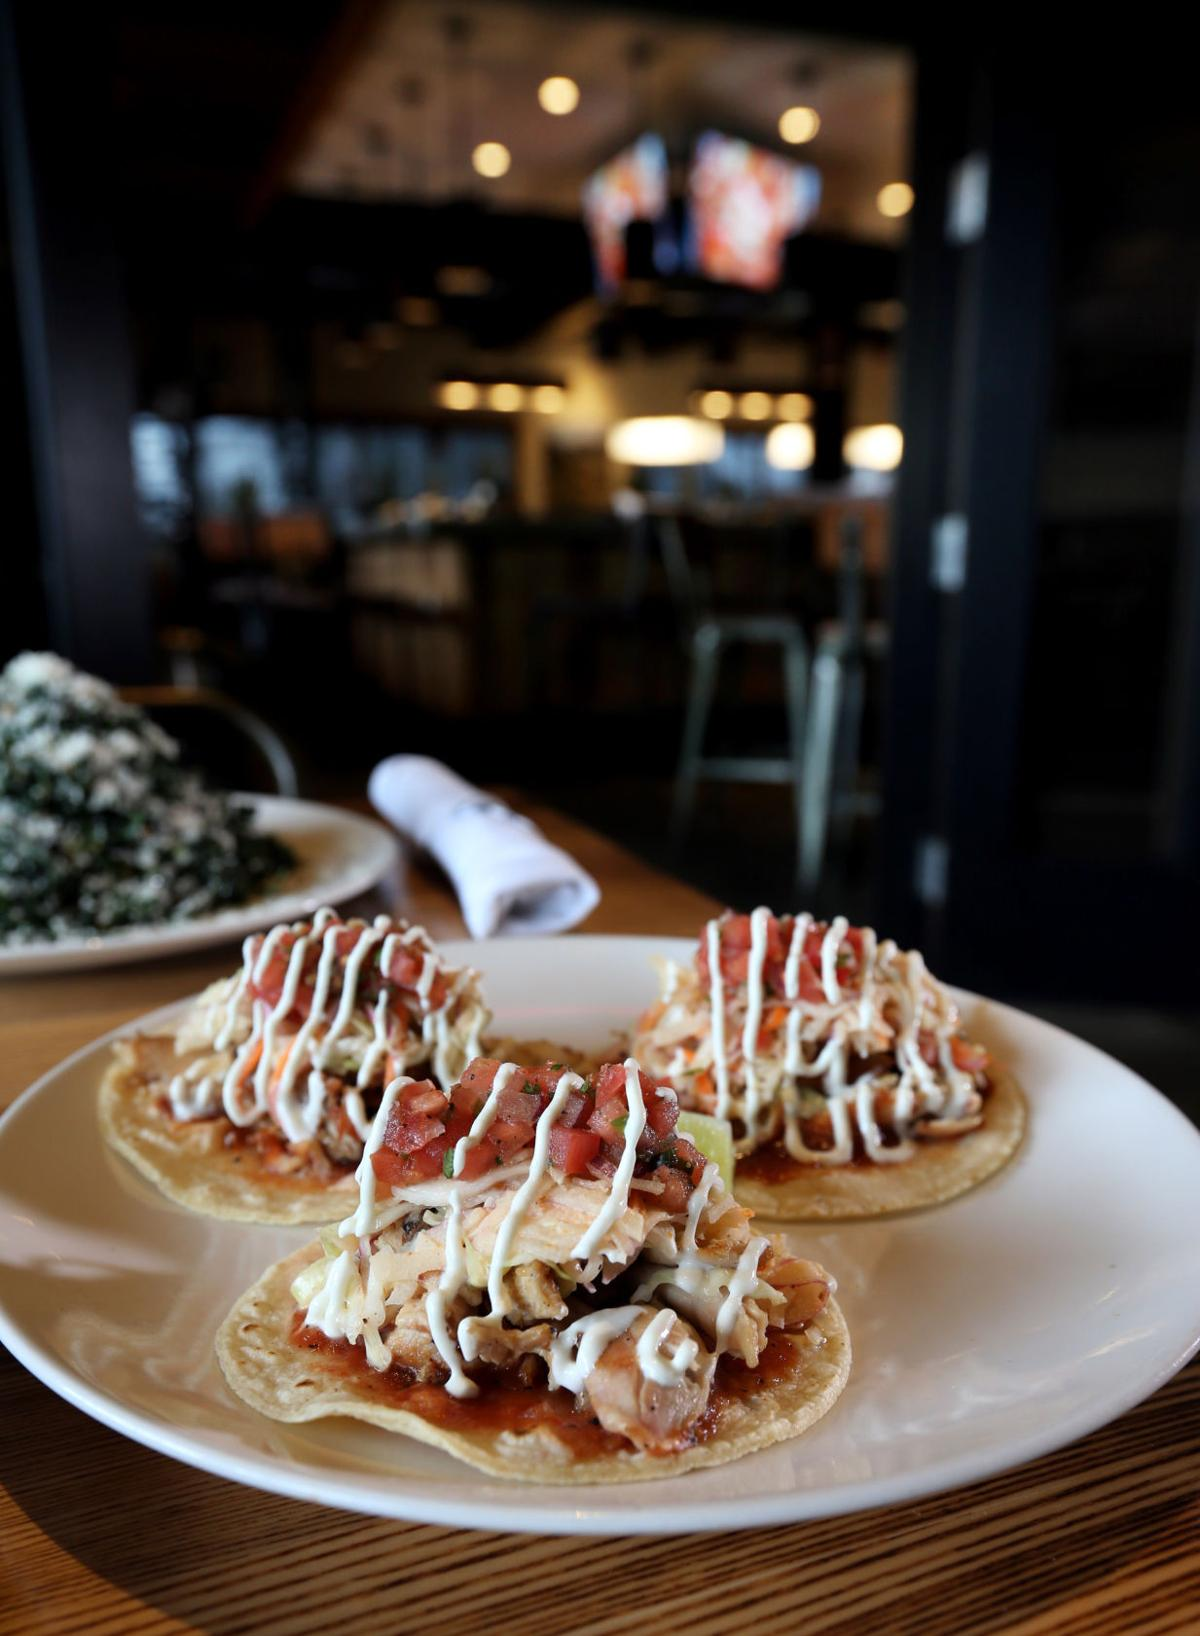 Restaurant Review Internationally Inspired Locally Sourced At Tazza Kitchen In Midlothian Restaurant Reviews Richmond Com